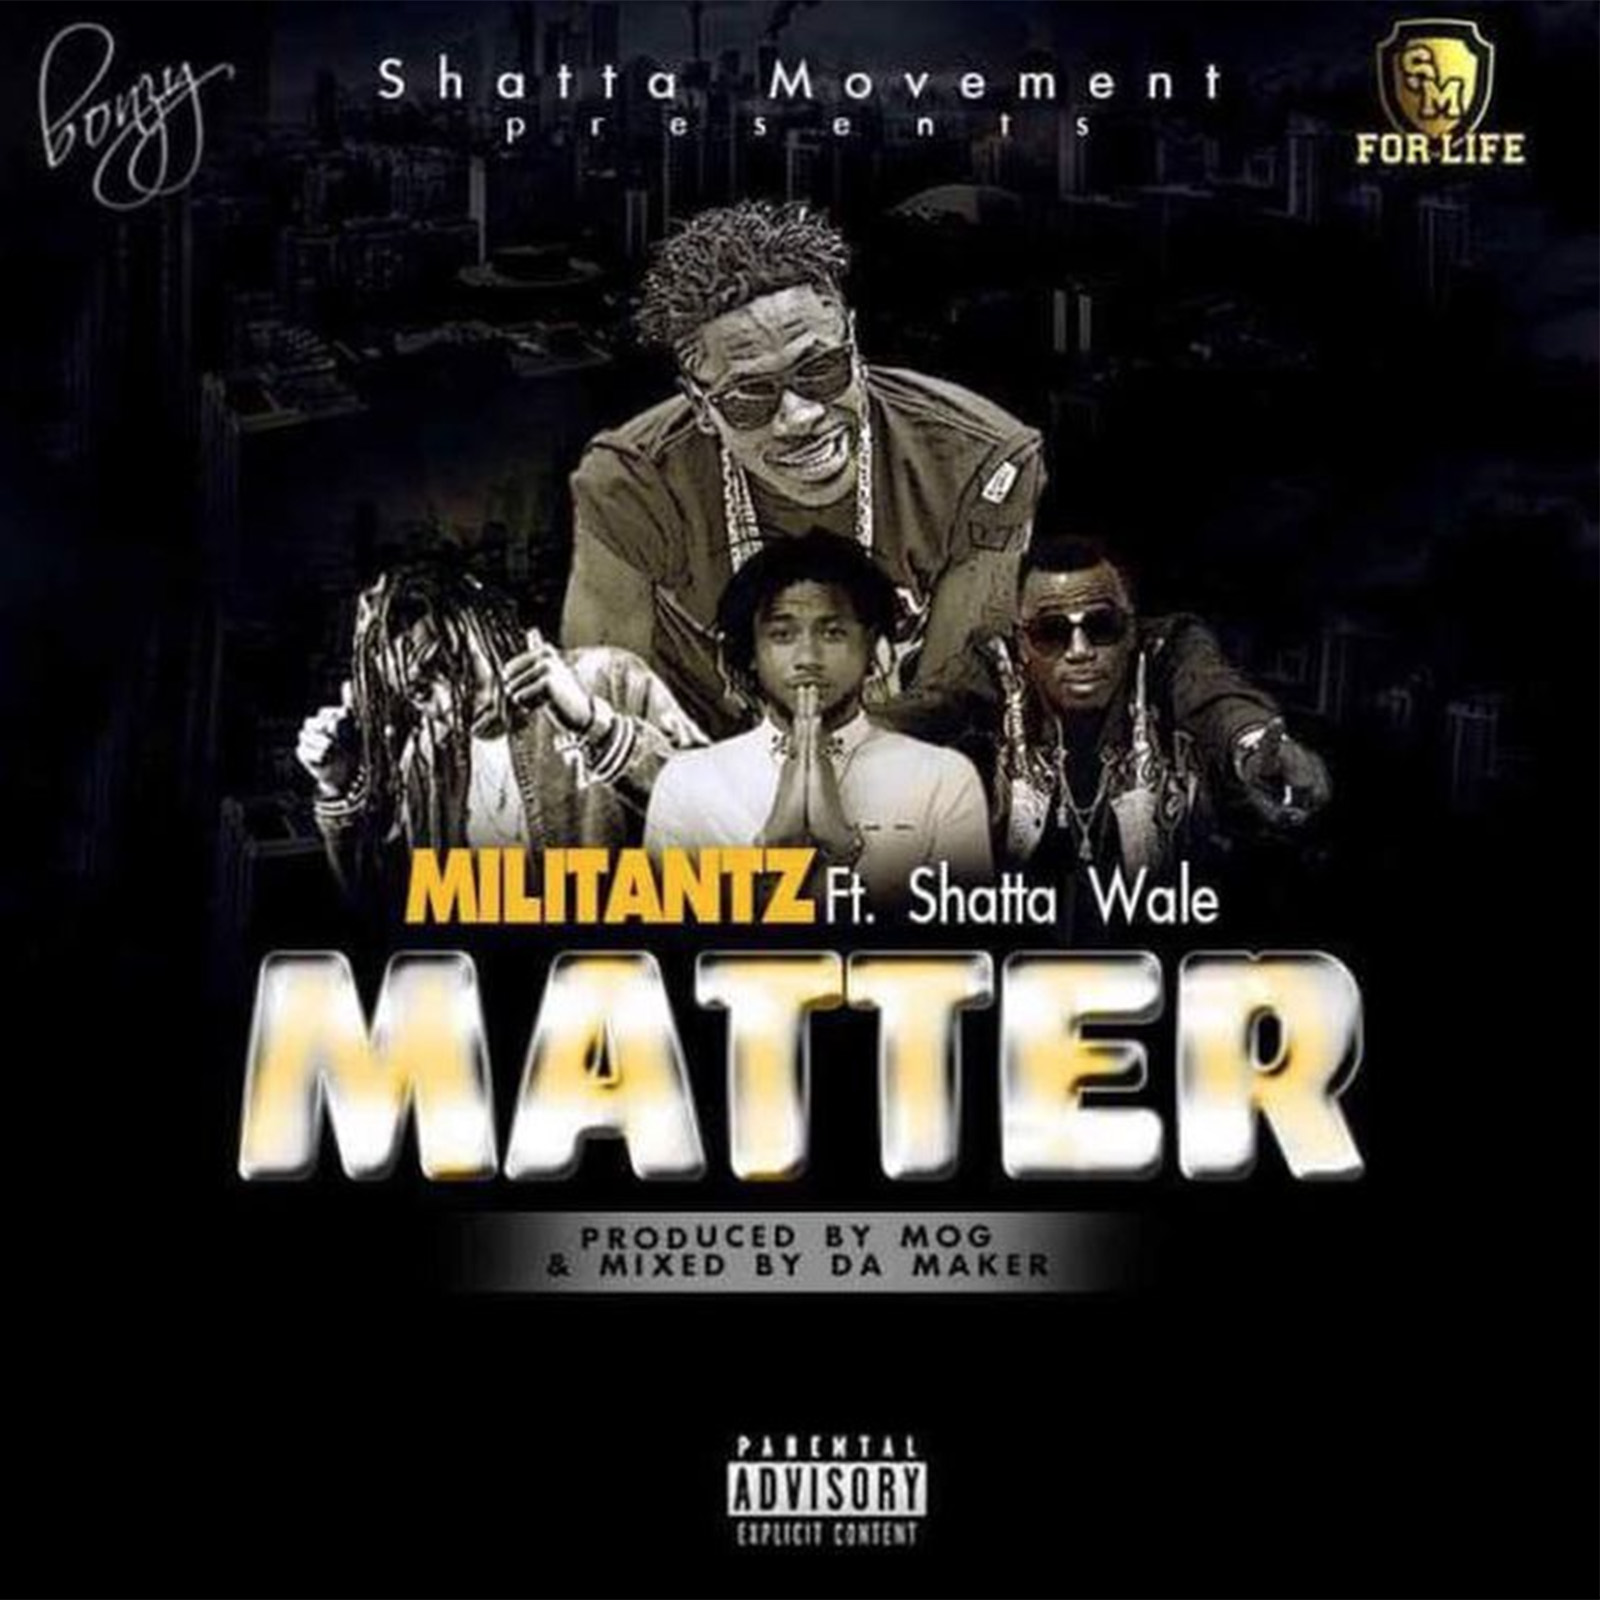 My Matter by Militantz feat. Shatta Wale